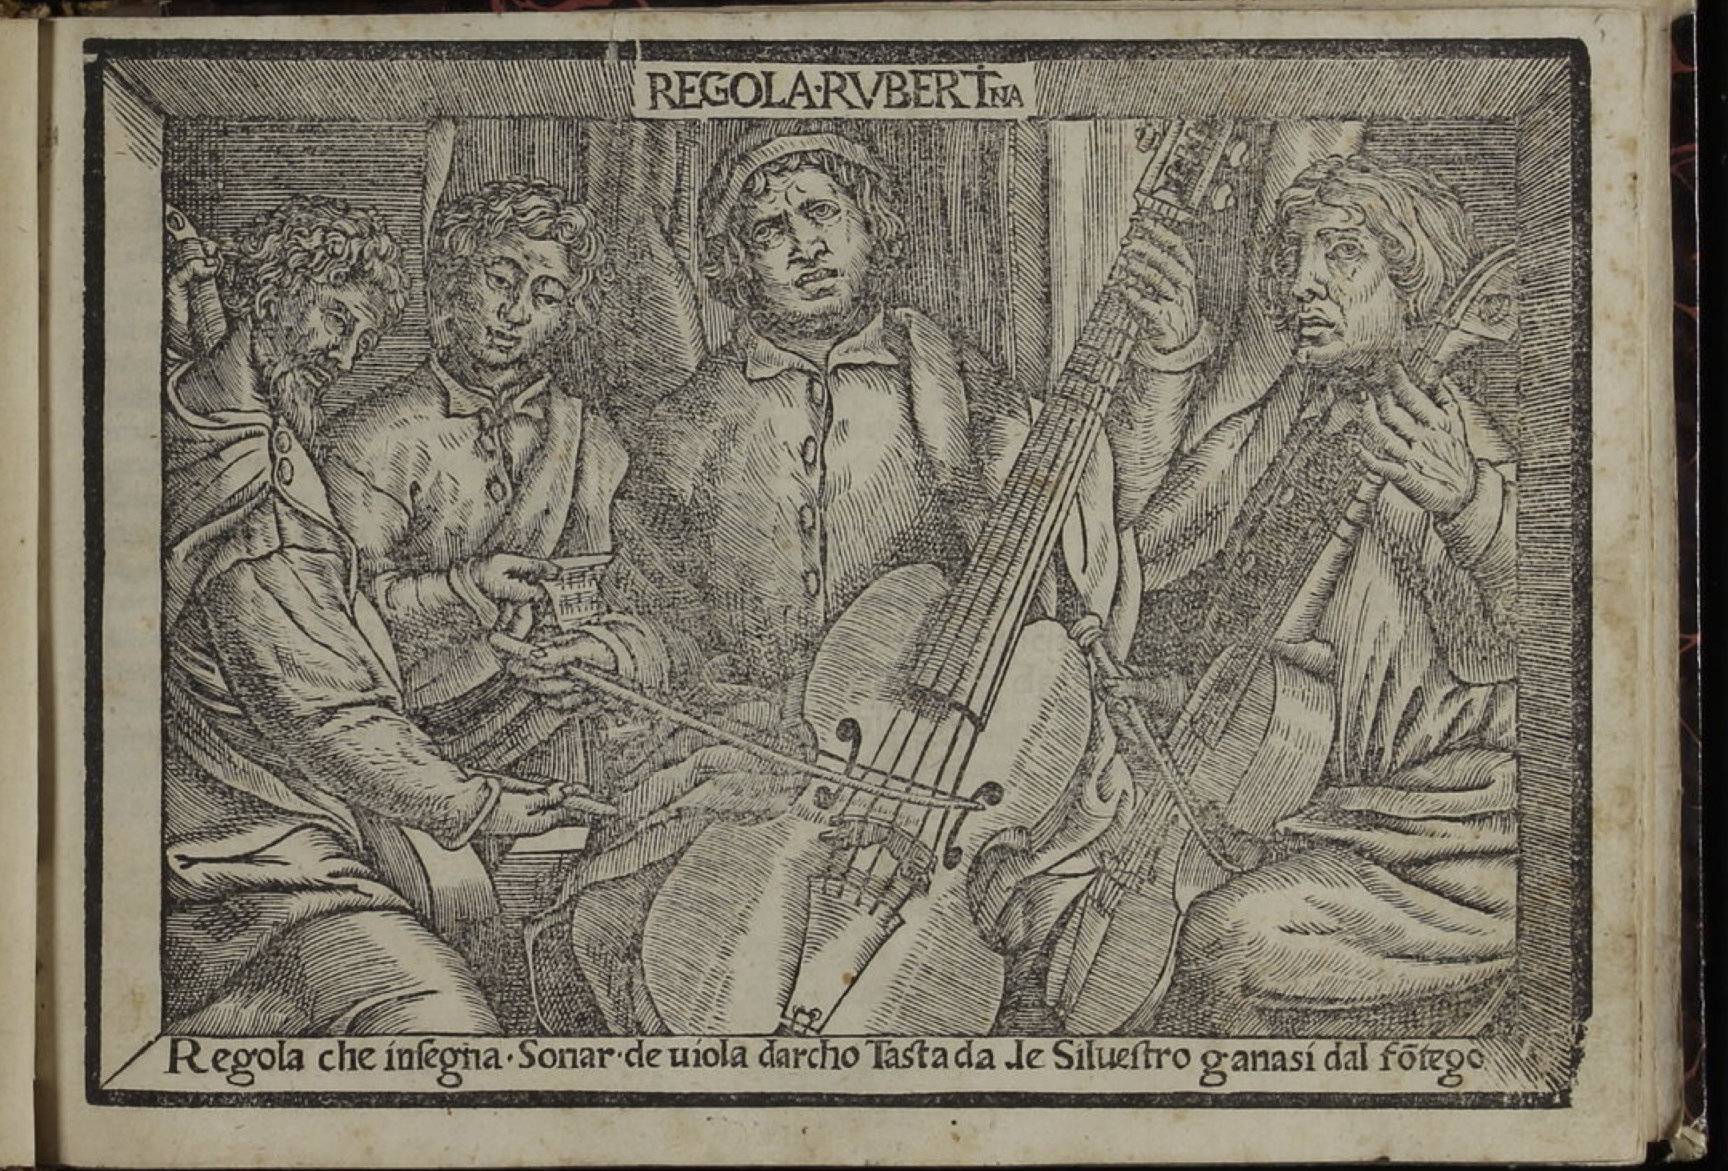 Early bowed instruments around 1500 (SCB)